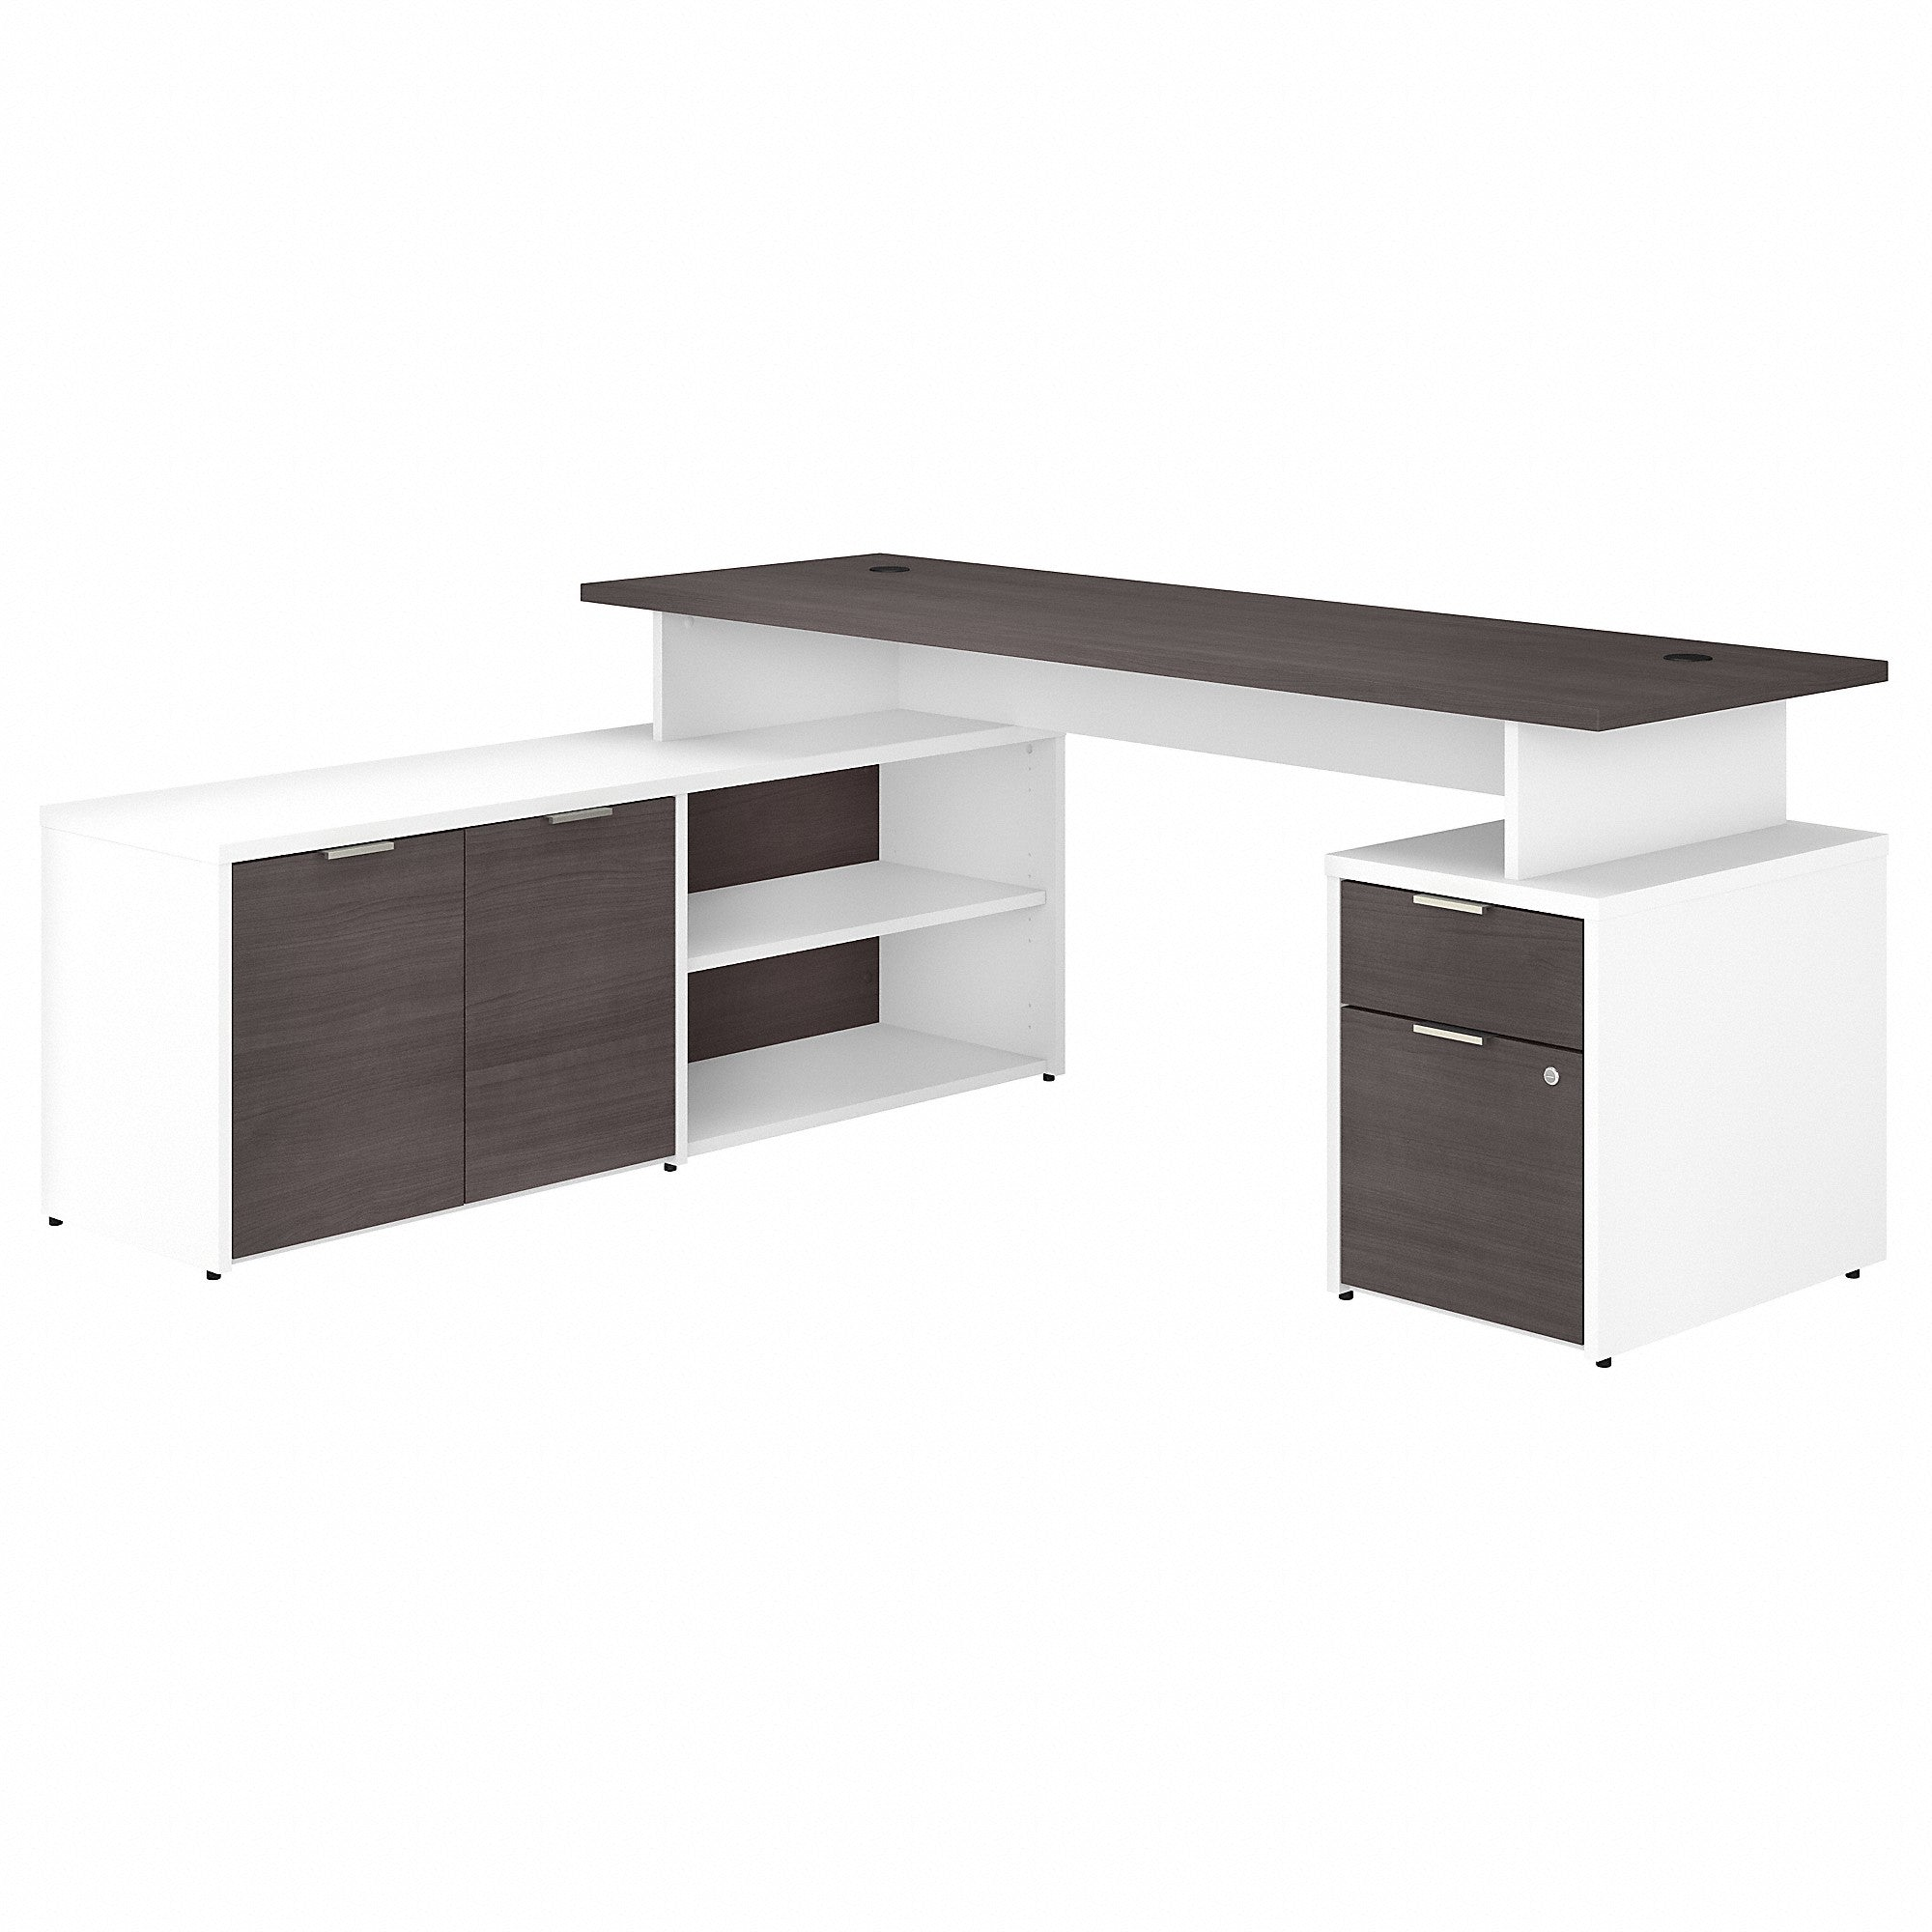 Bush Business Furniture Jamestown 72W L Shaped Desk with Drawers | Storm Gray/White